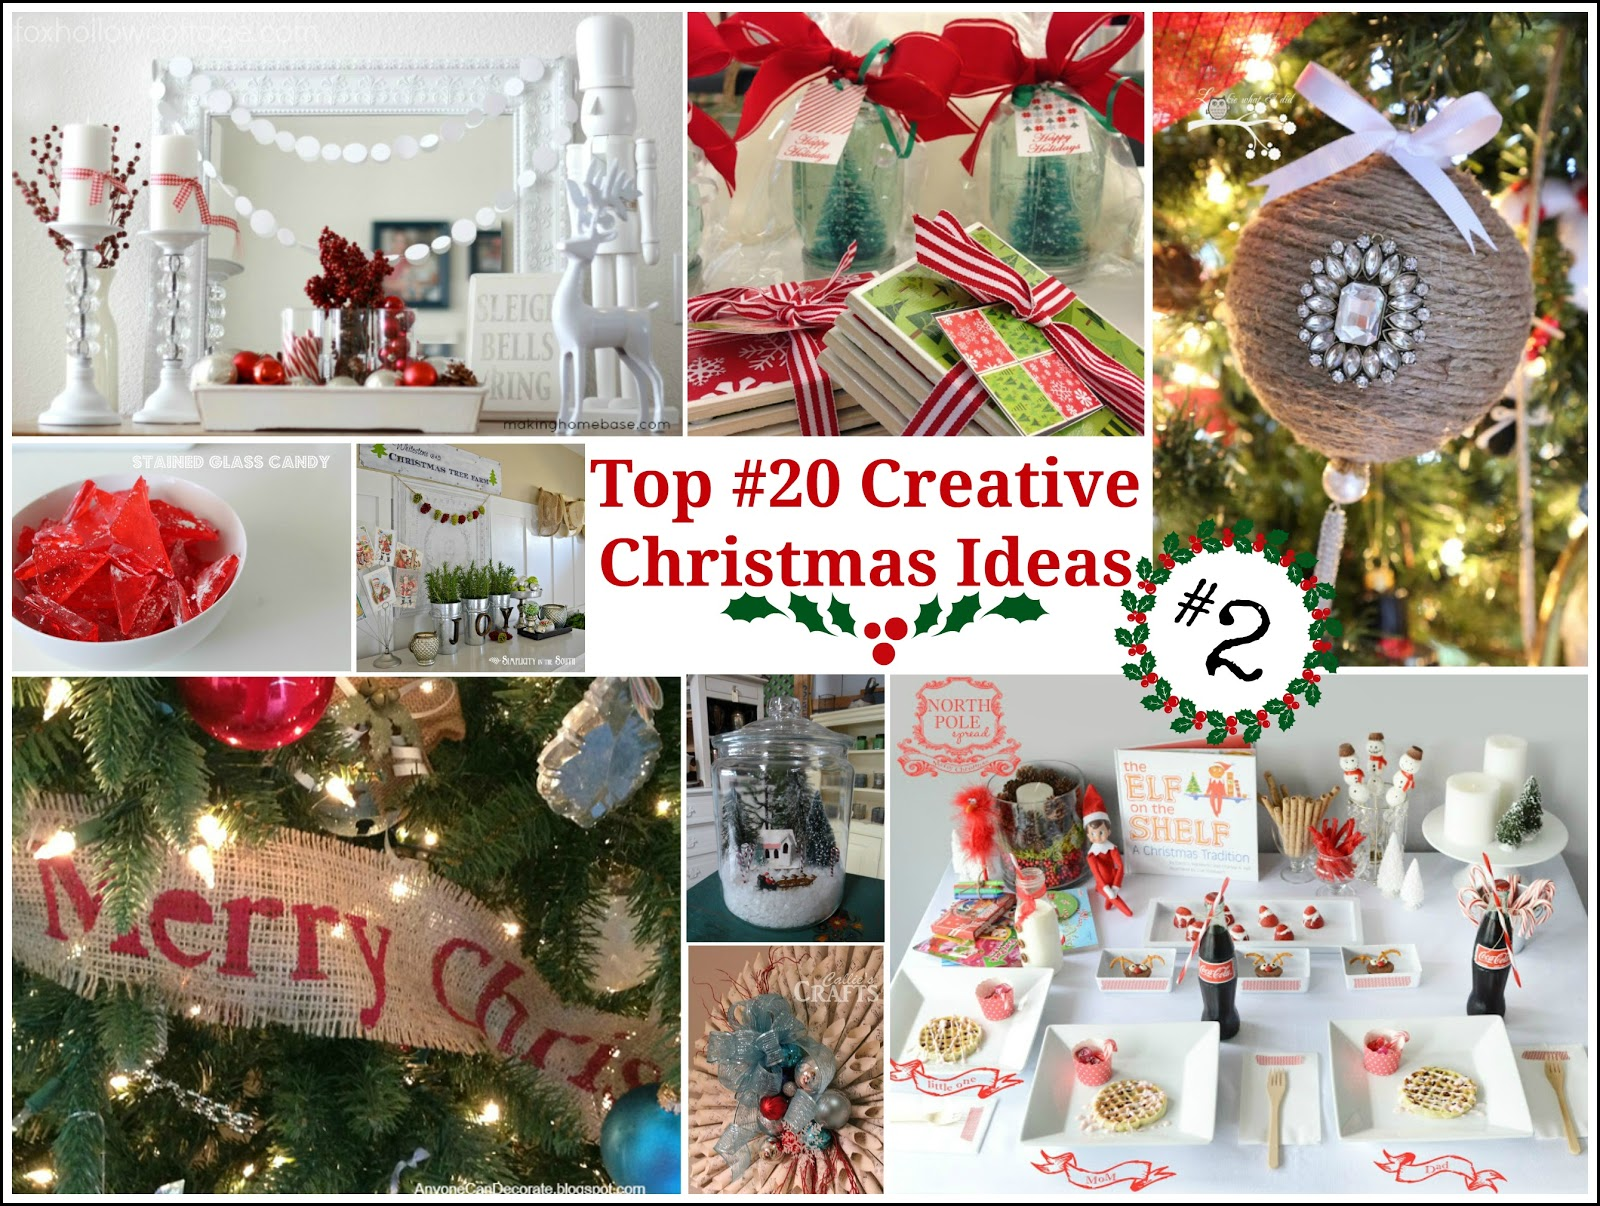 Pinterest holiday ideas holiday decorations gifts and - Pinterest craft ideas for home decor property ...